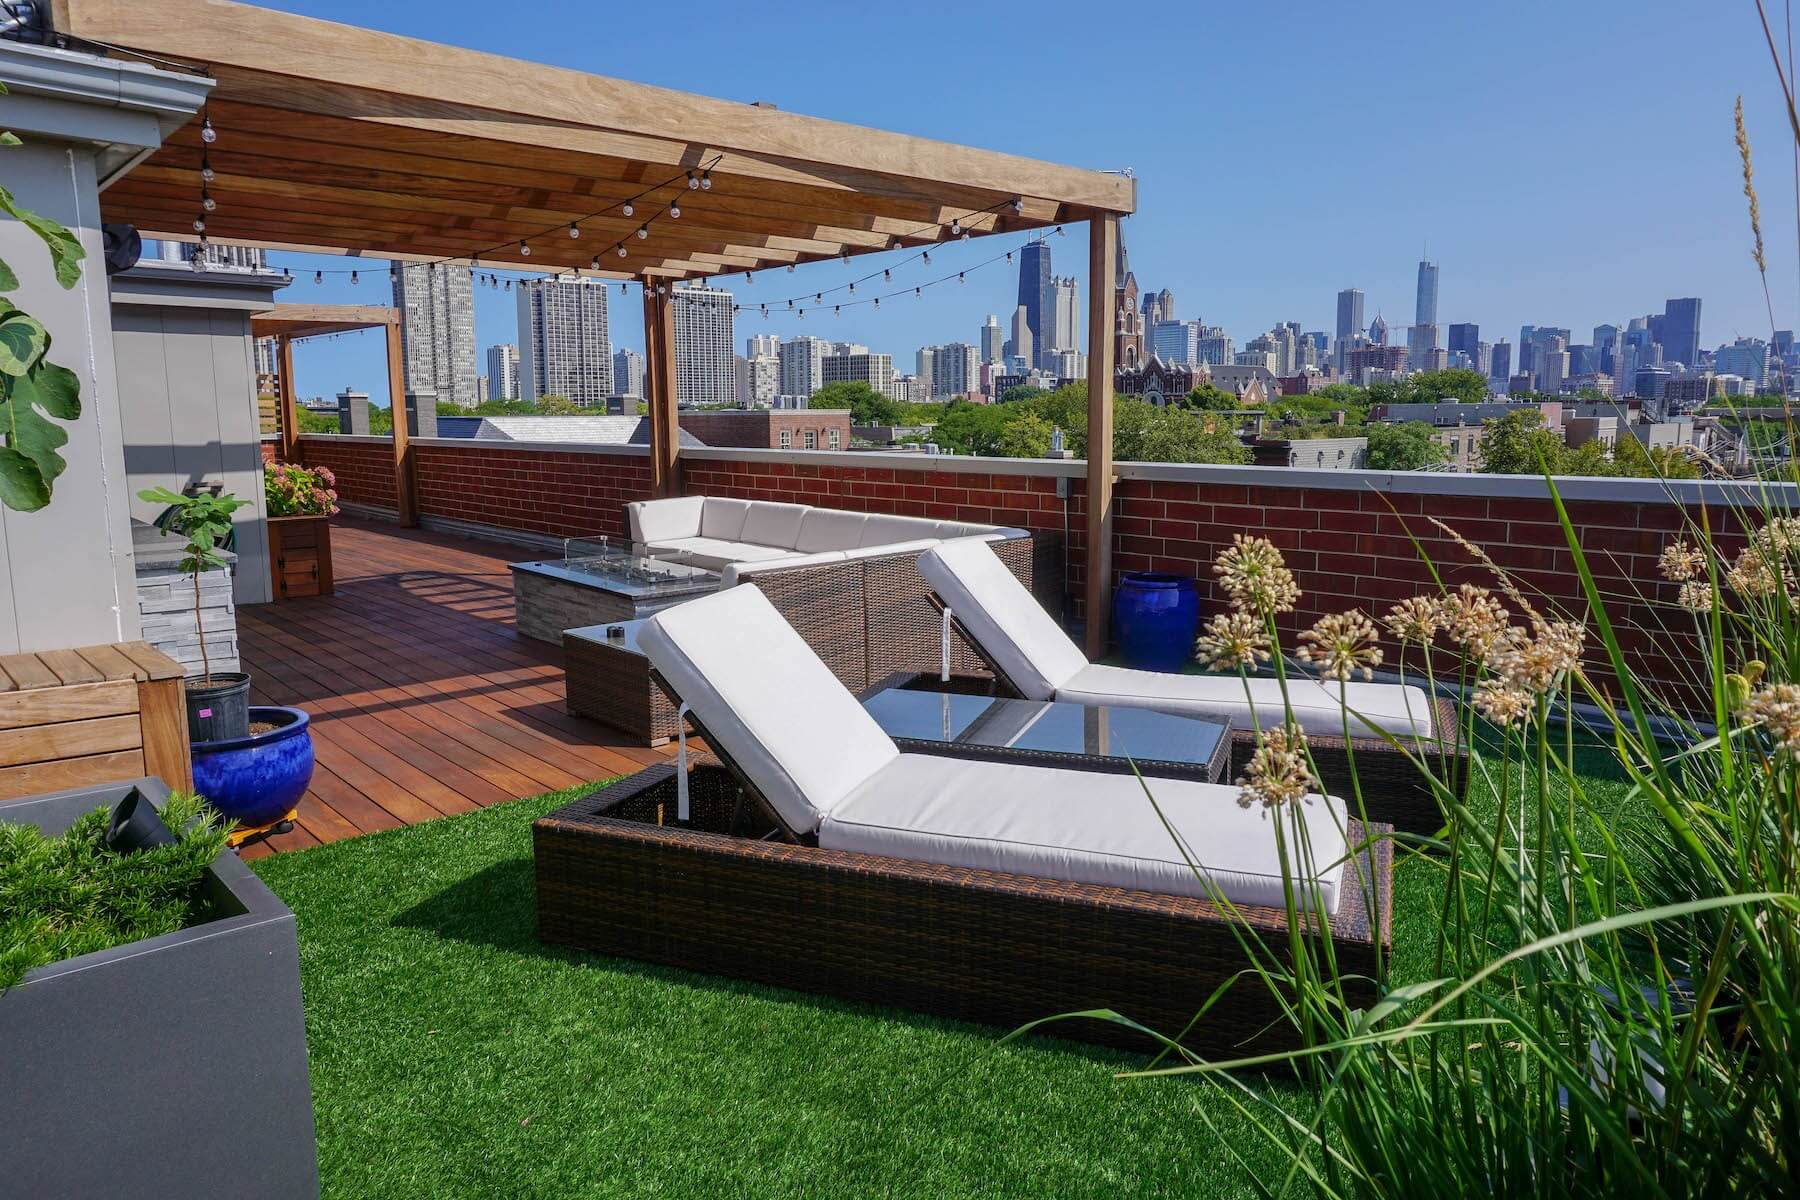 Rooftop Deck With Lounge Chairs